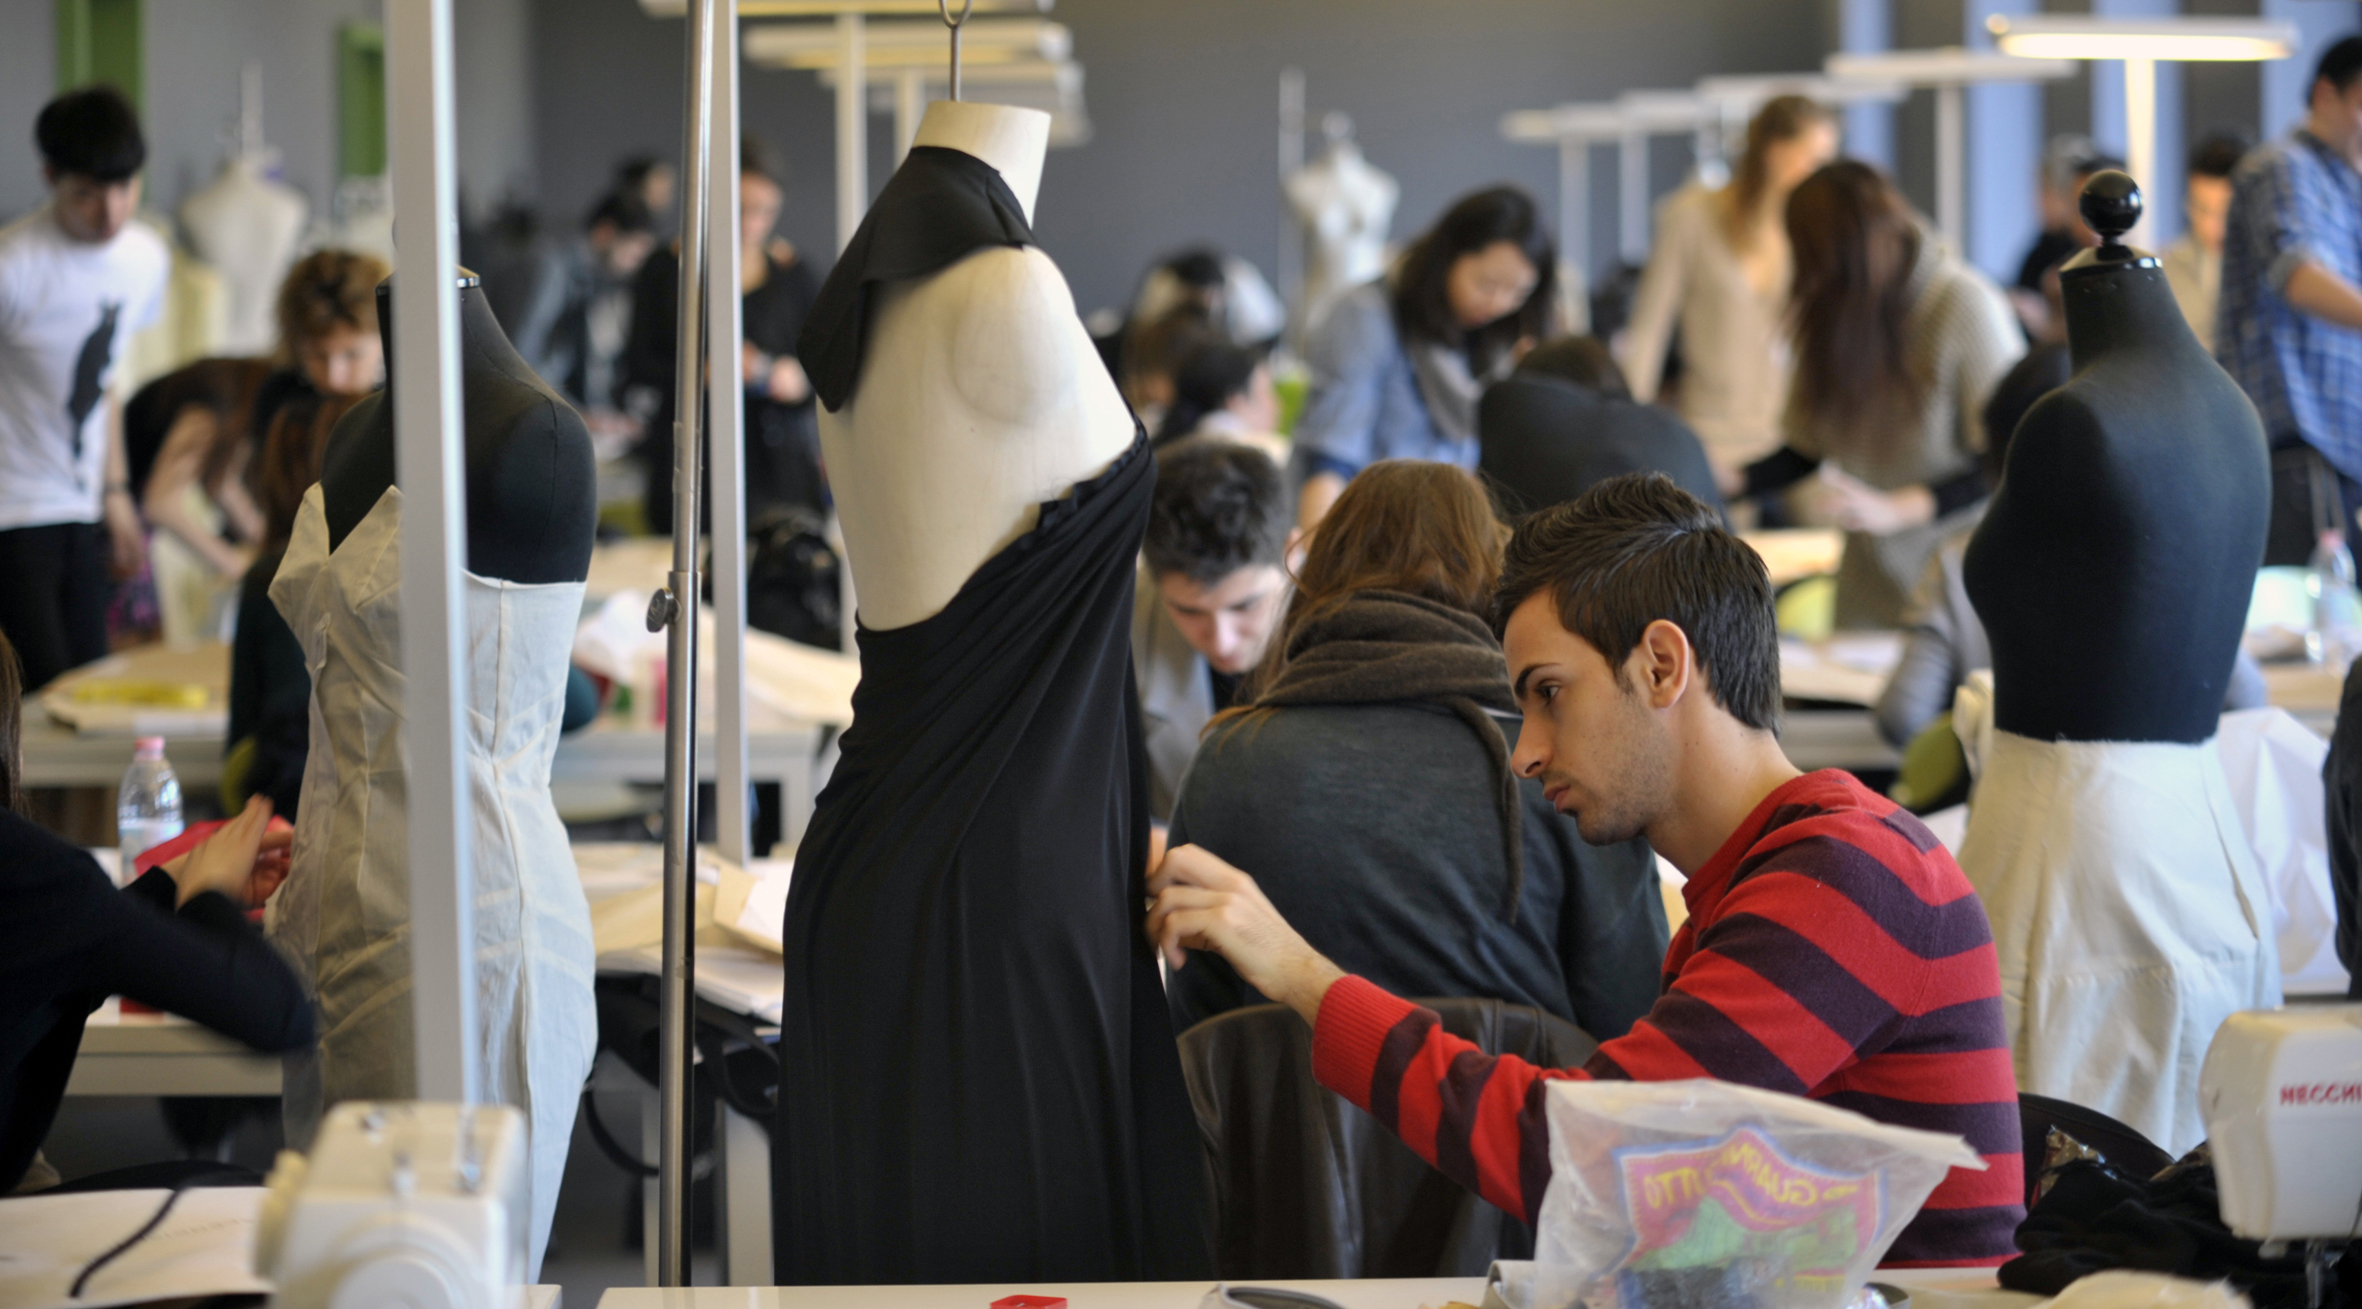 Image Wallpaper » Fashion Colleges